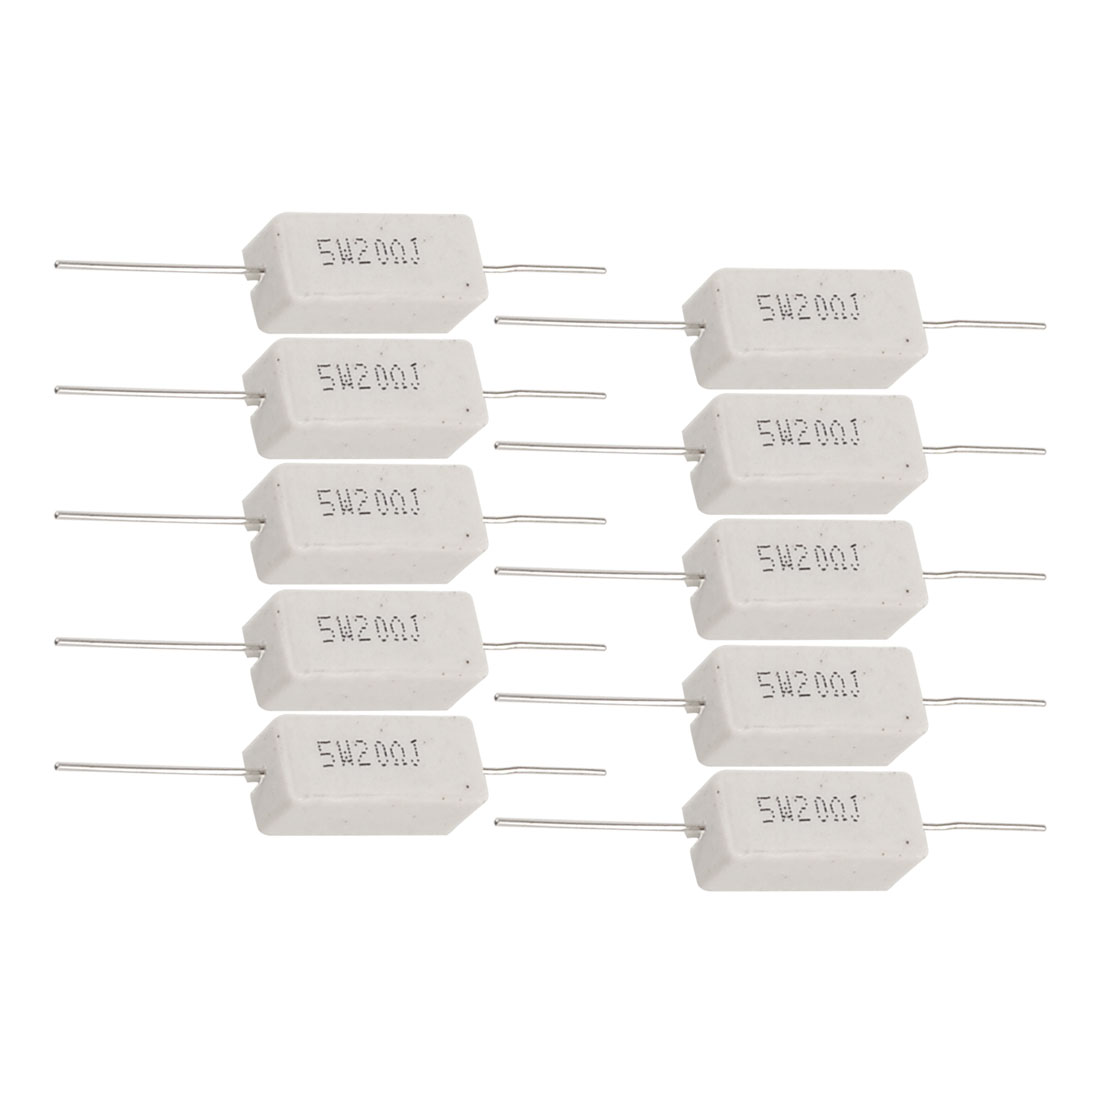 5W 20 Ohm Ceramic Cement Power Resistor Axial Lead 10 Pcs